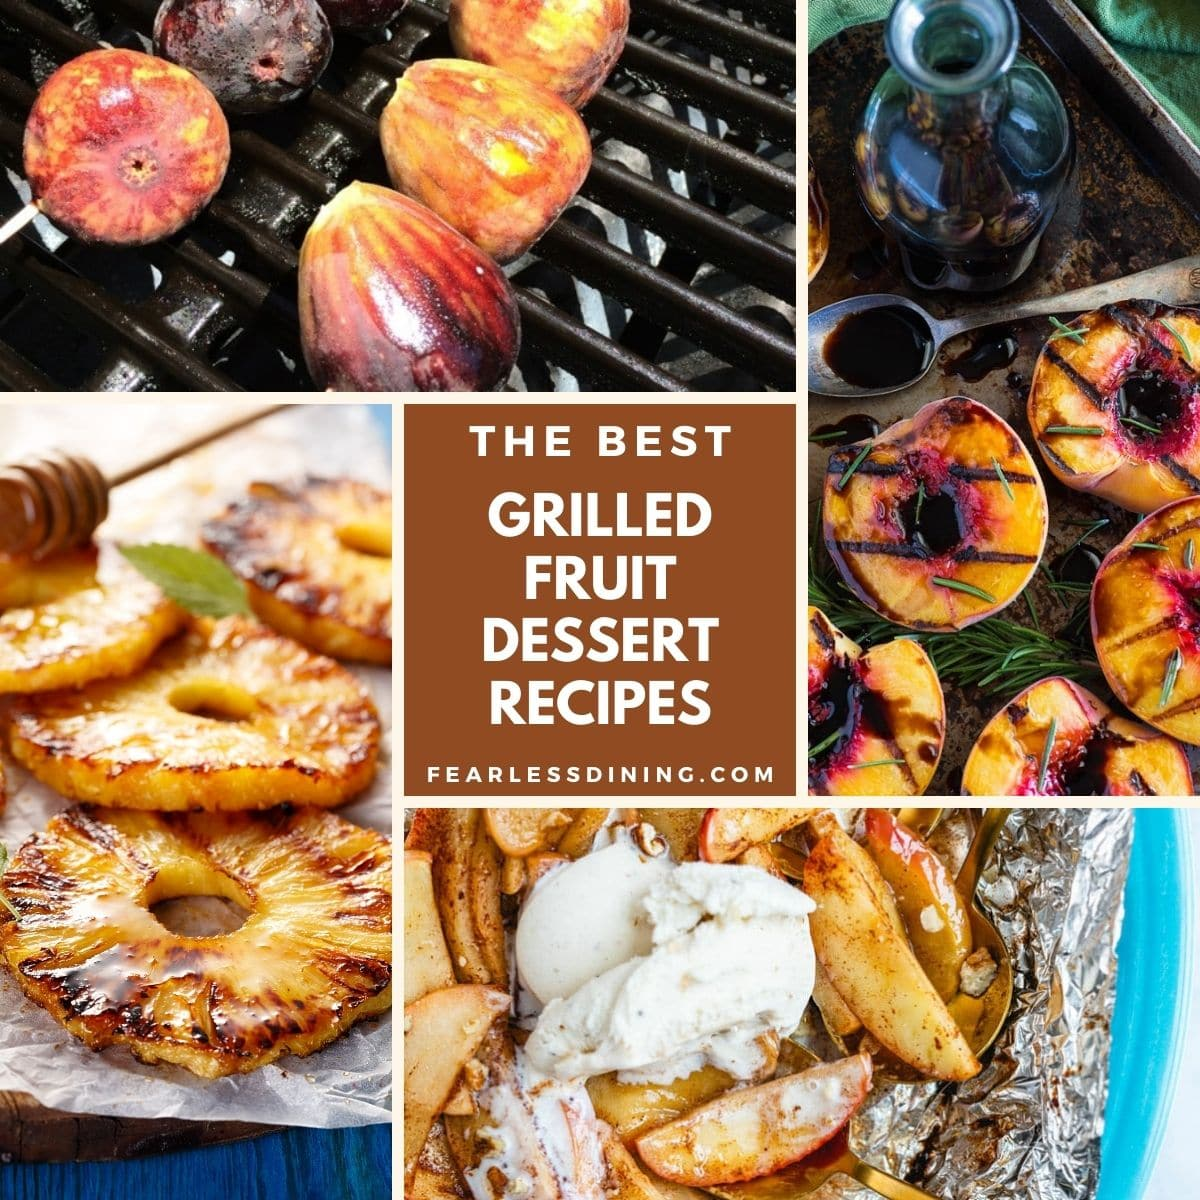 photos of grilled fruit desserts